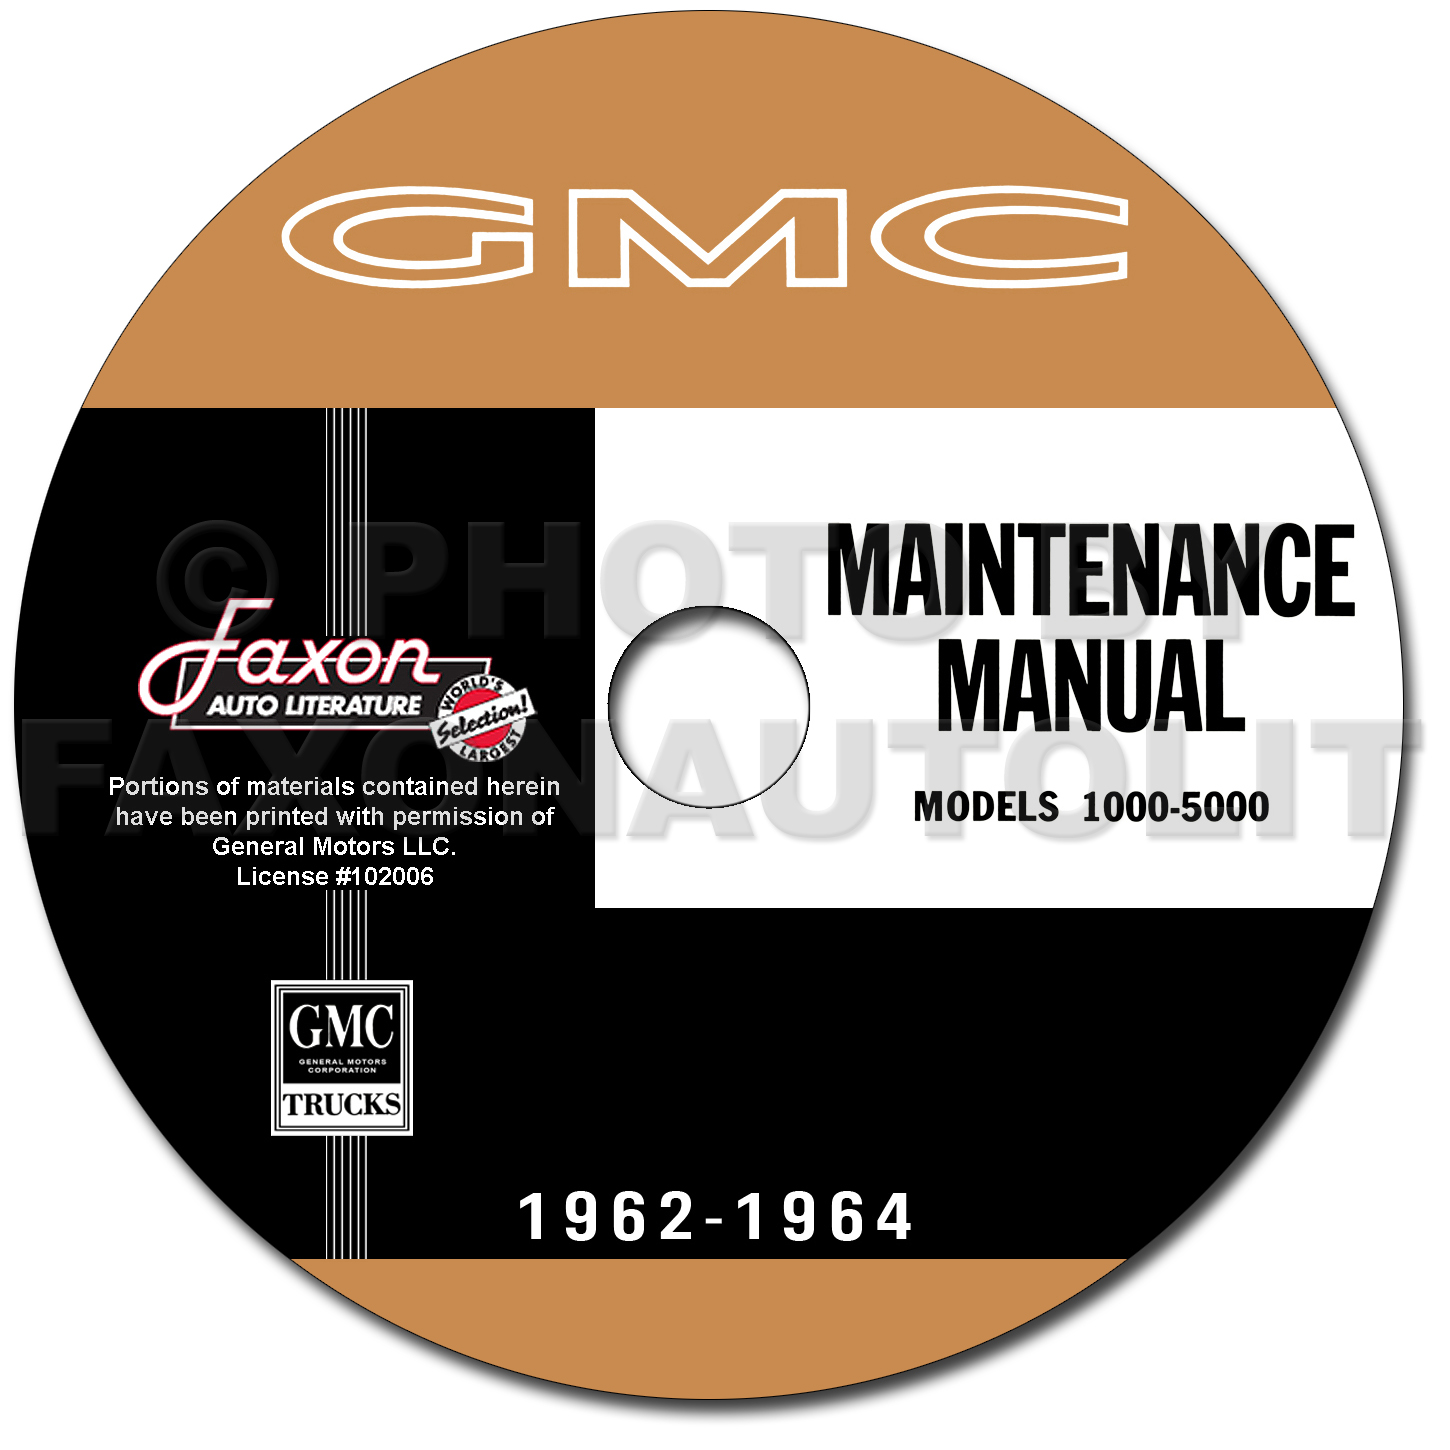 1962-1964 GMC 1000-5000 Truck Repair Shop Manuals on CD-ROM